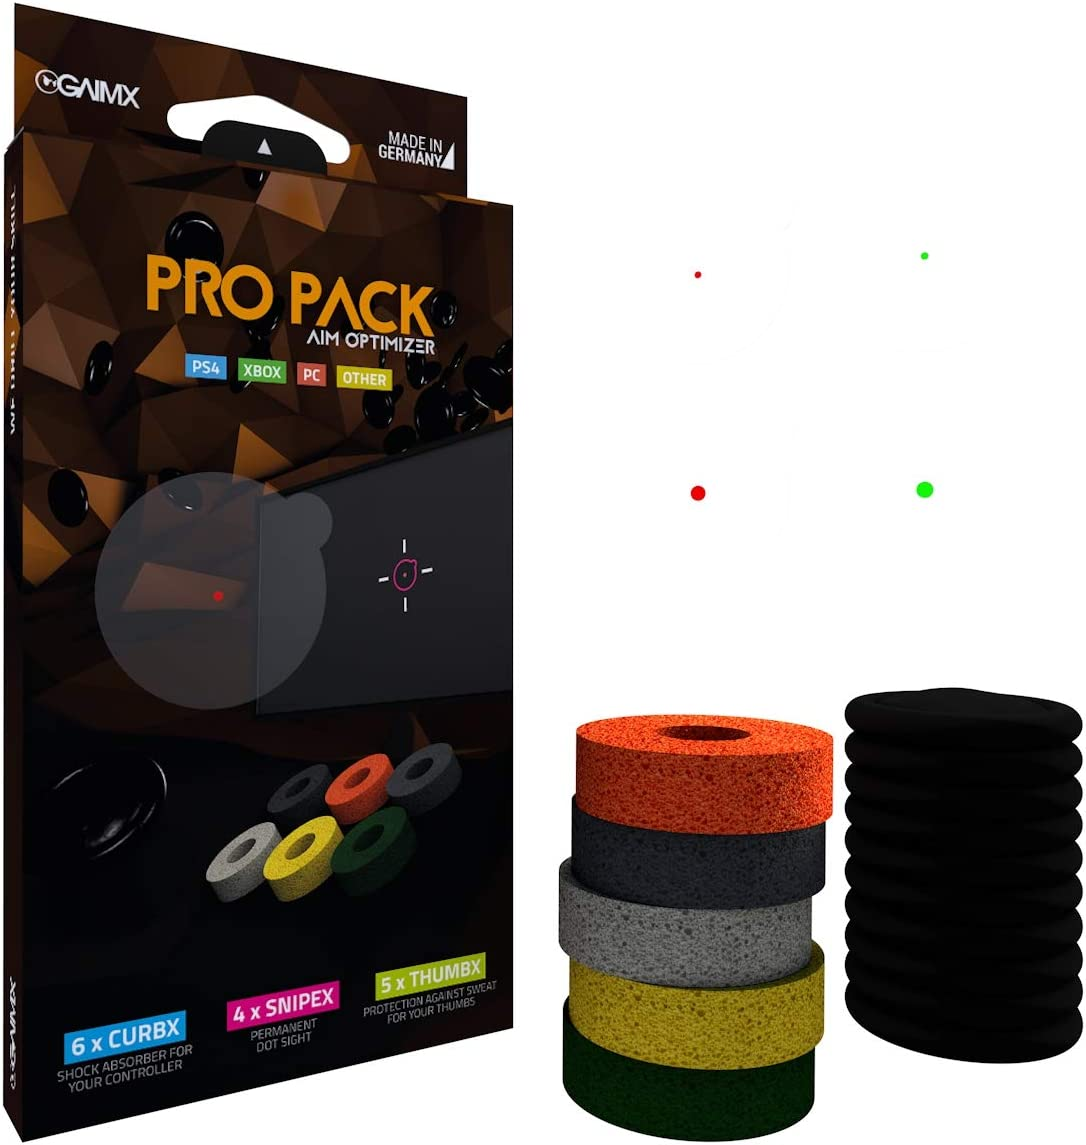 GAIMX PRO PACK Botones analógicos - Accesorios de controlador de juego (Botones analógicos, Nintendo Switch,PlayStation 4,Xbox One, Multicolor) , color/modelo surtido: Amazon.es: Juguetes y juegos